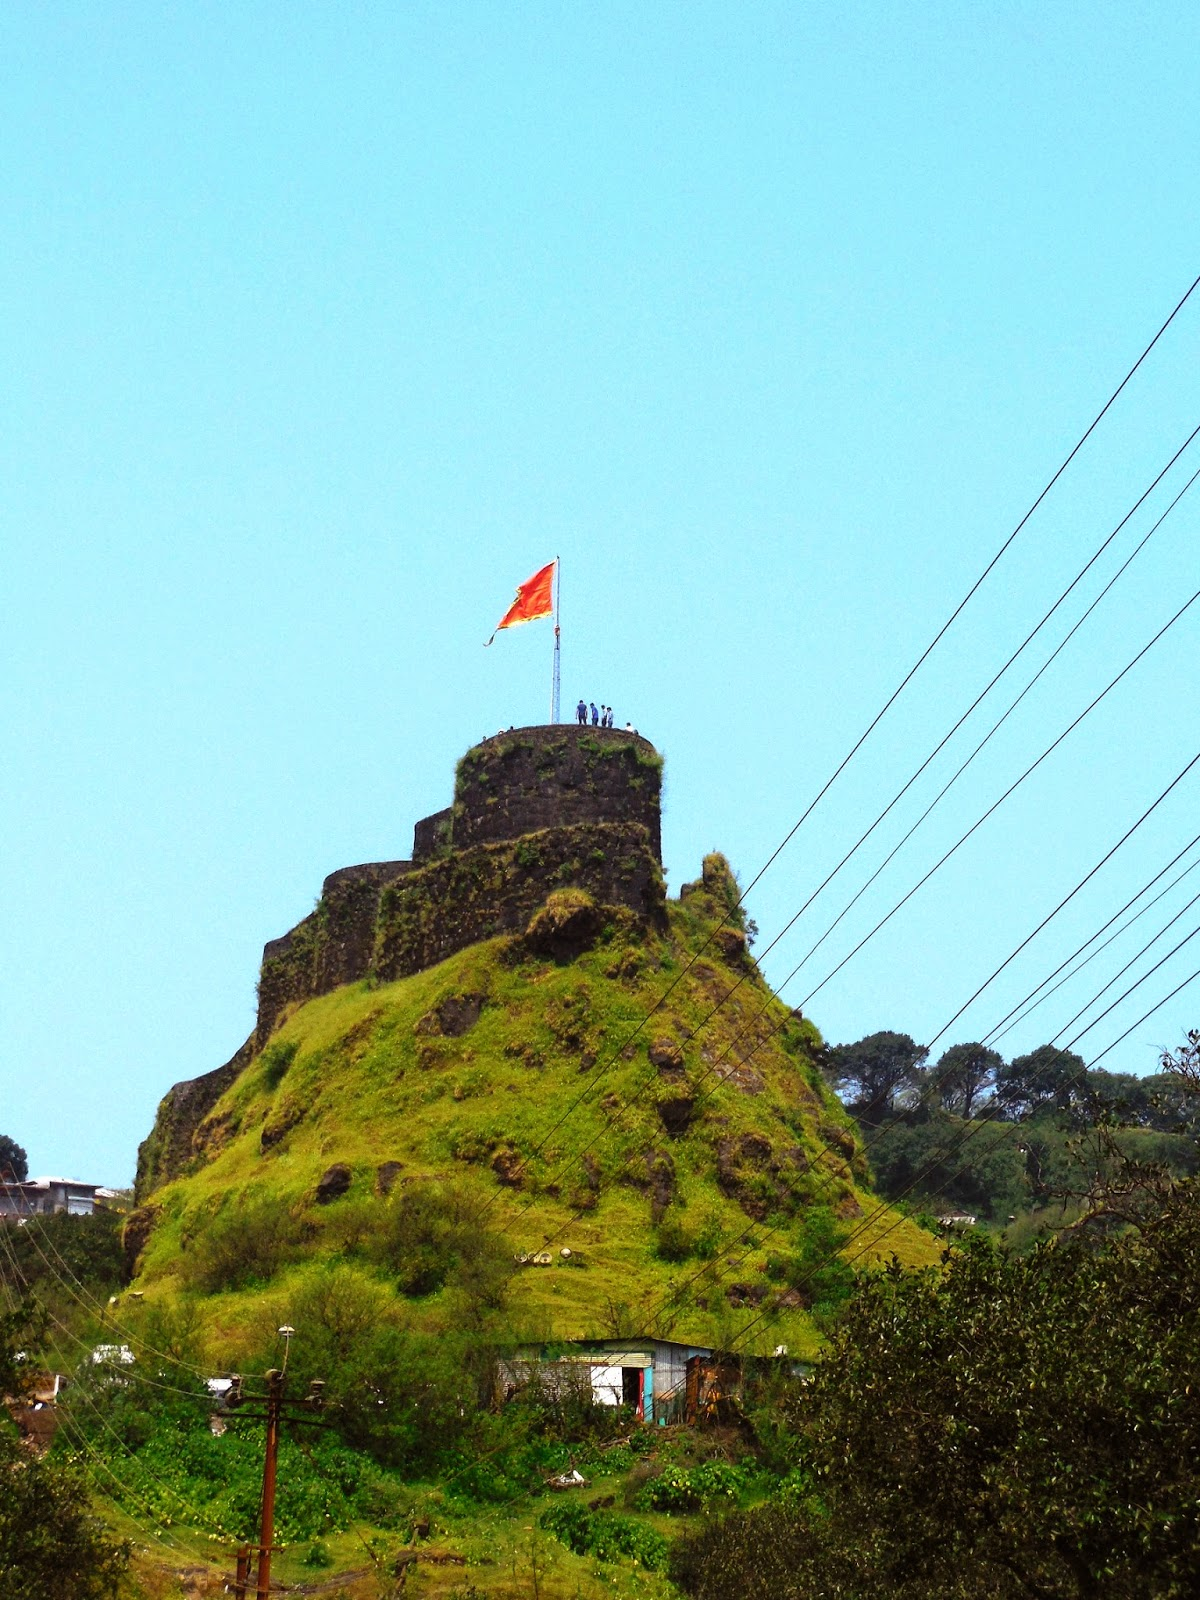 Pratapgarh fort from a distance